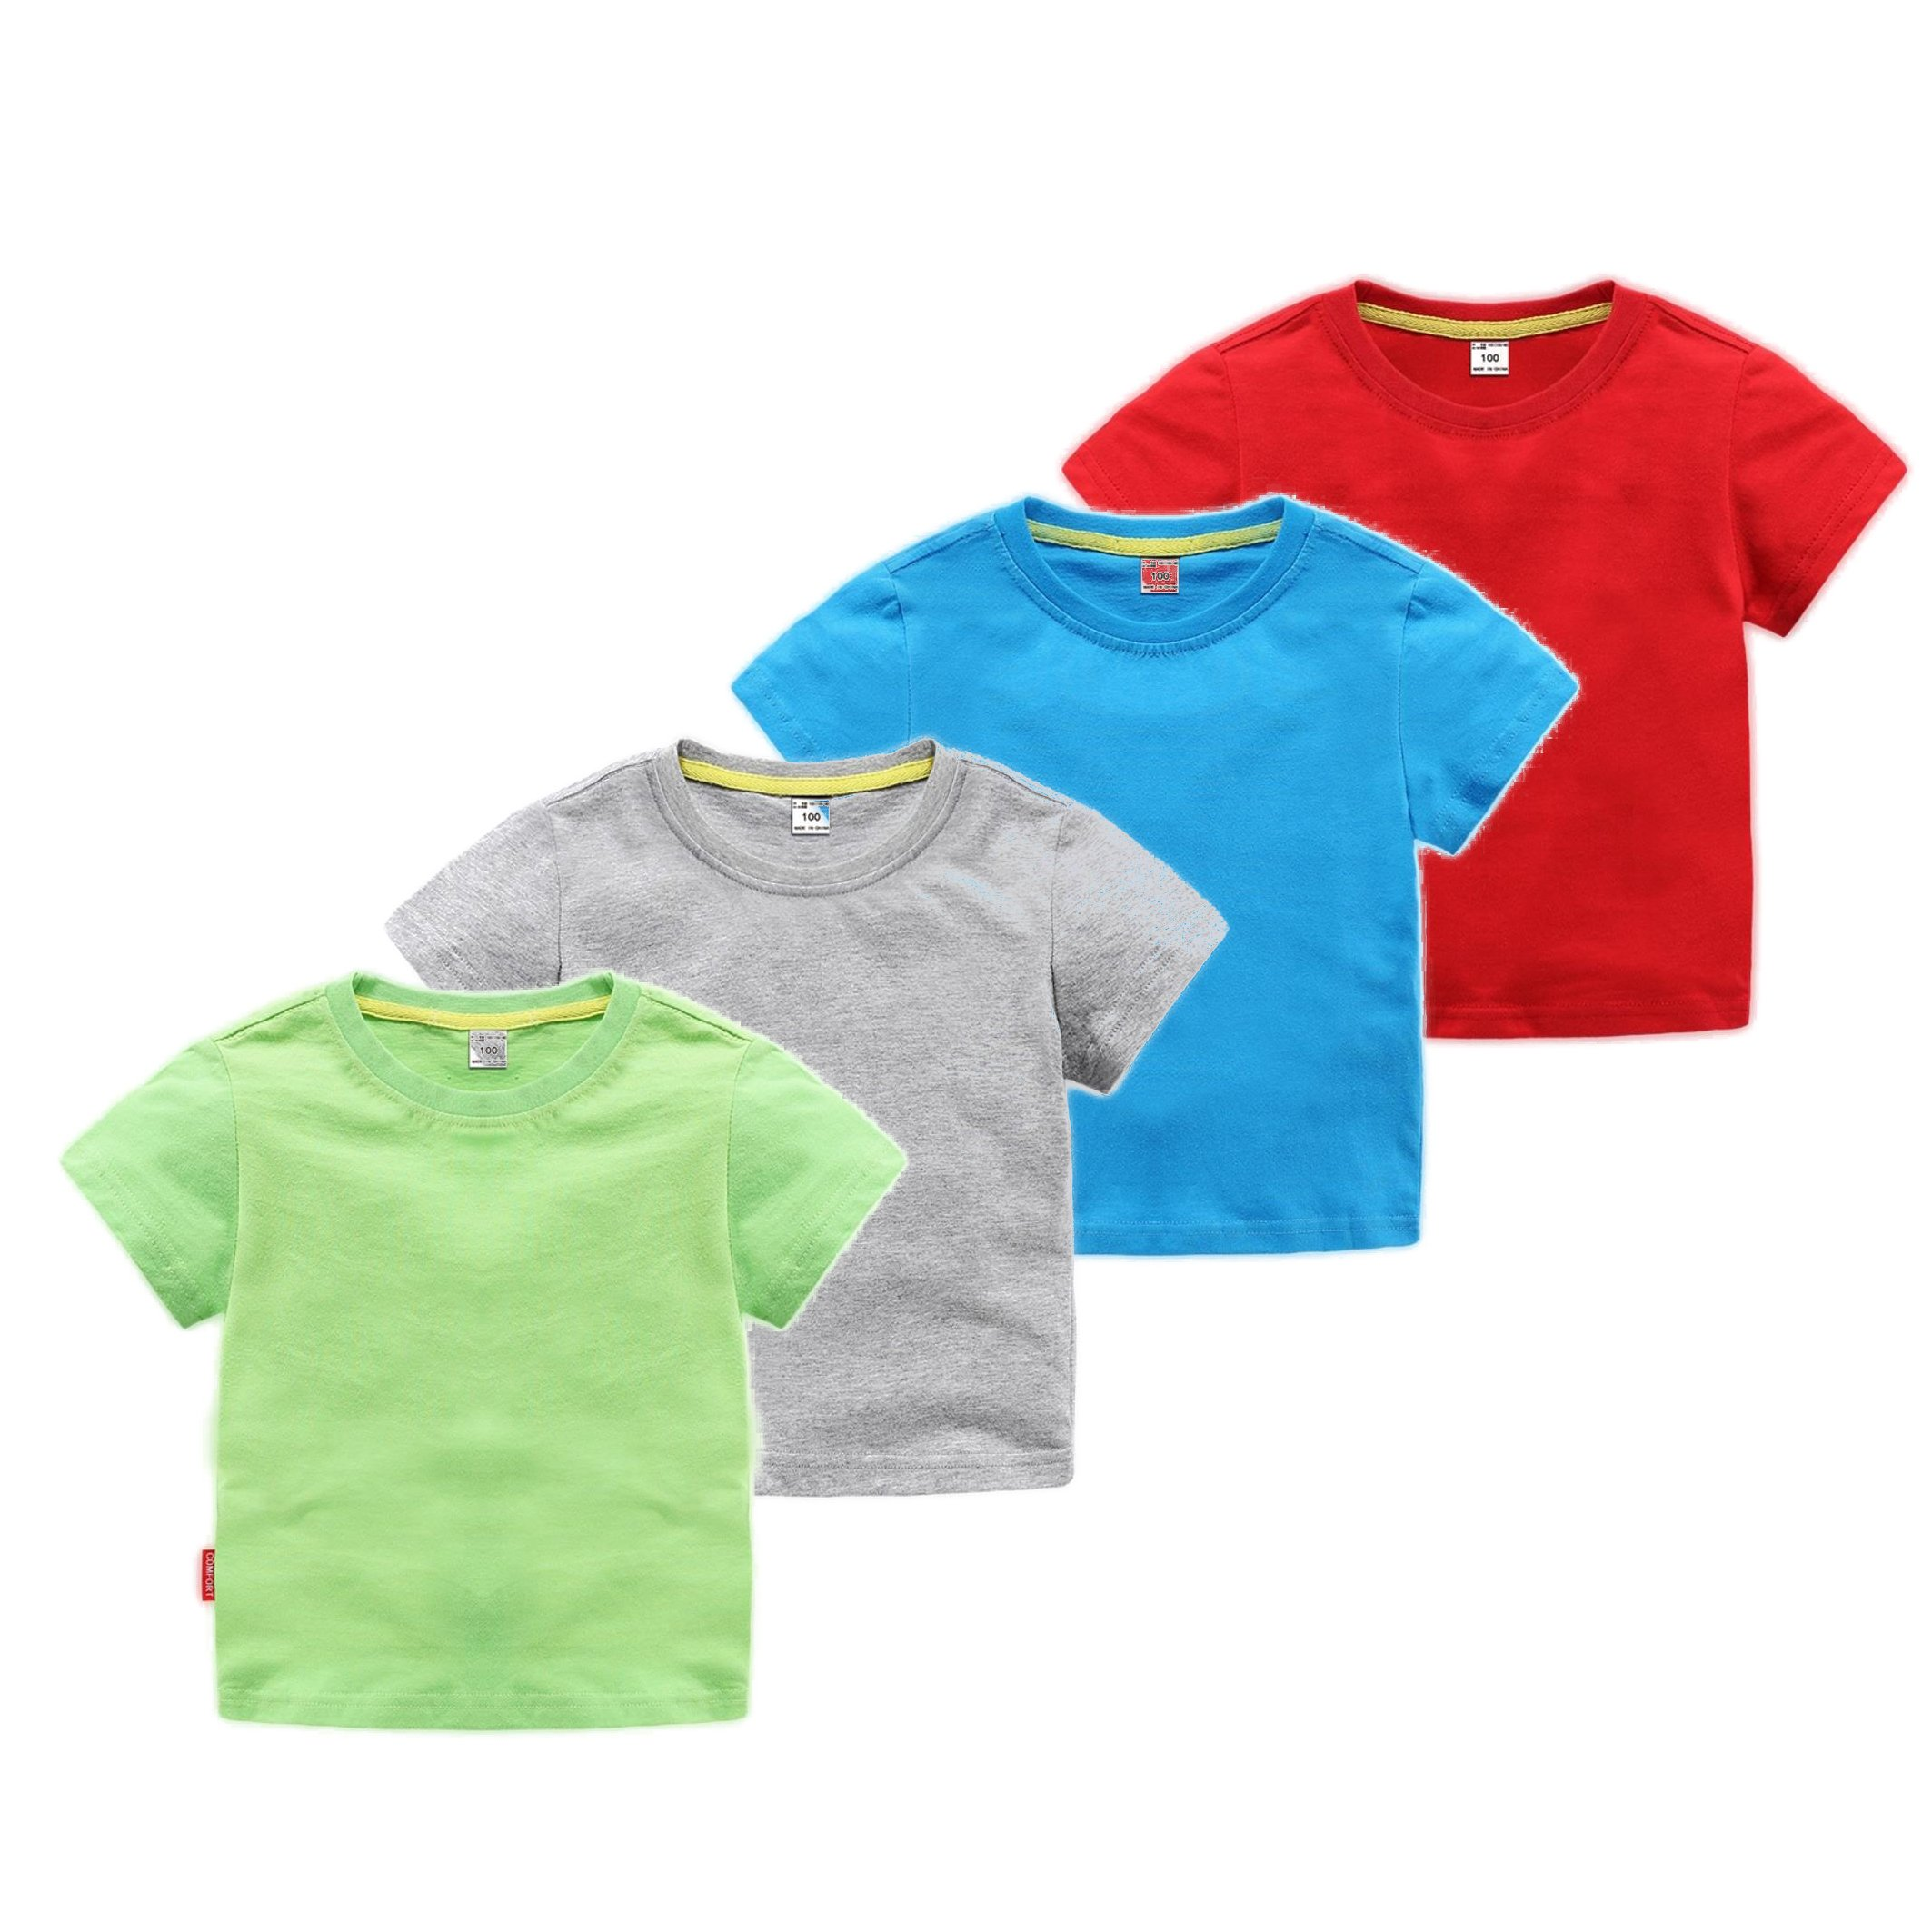 Motecity Fashion Little Boys' Summer Solid Color Cotton T-Shirt (6 T, Multi) Pack of 4